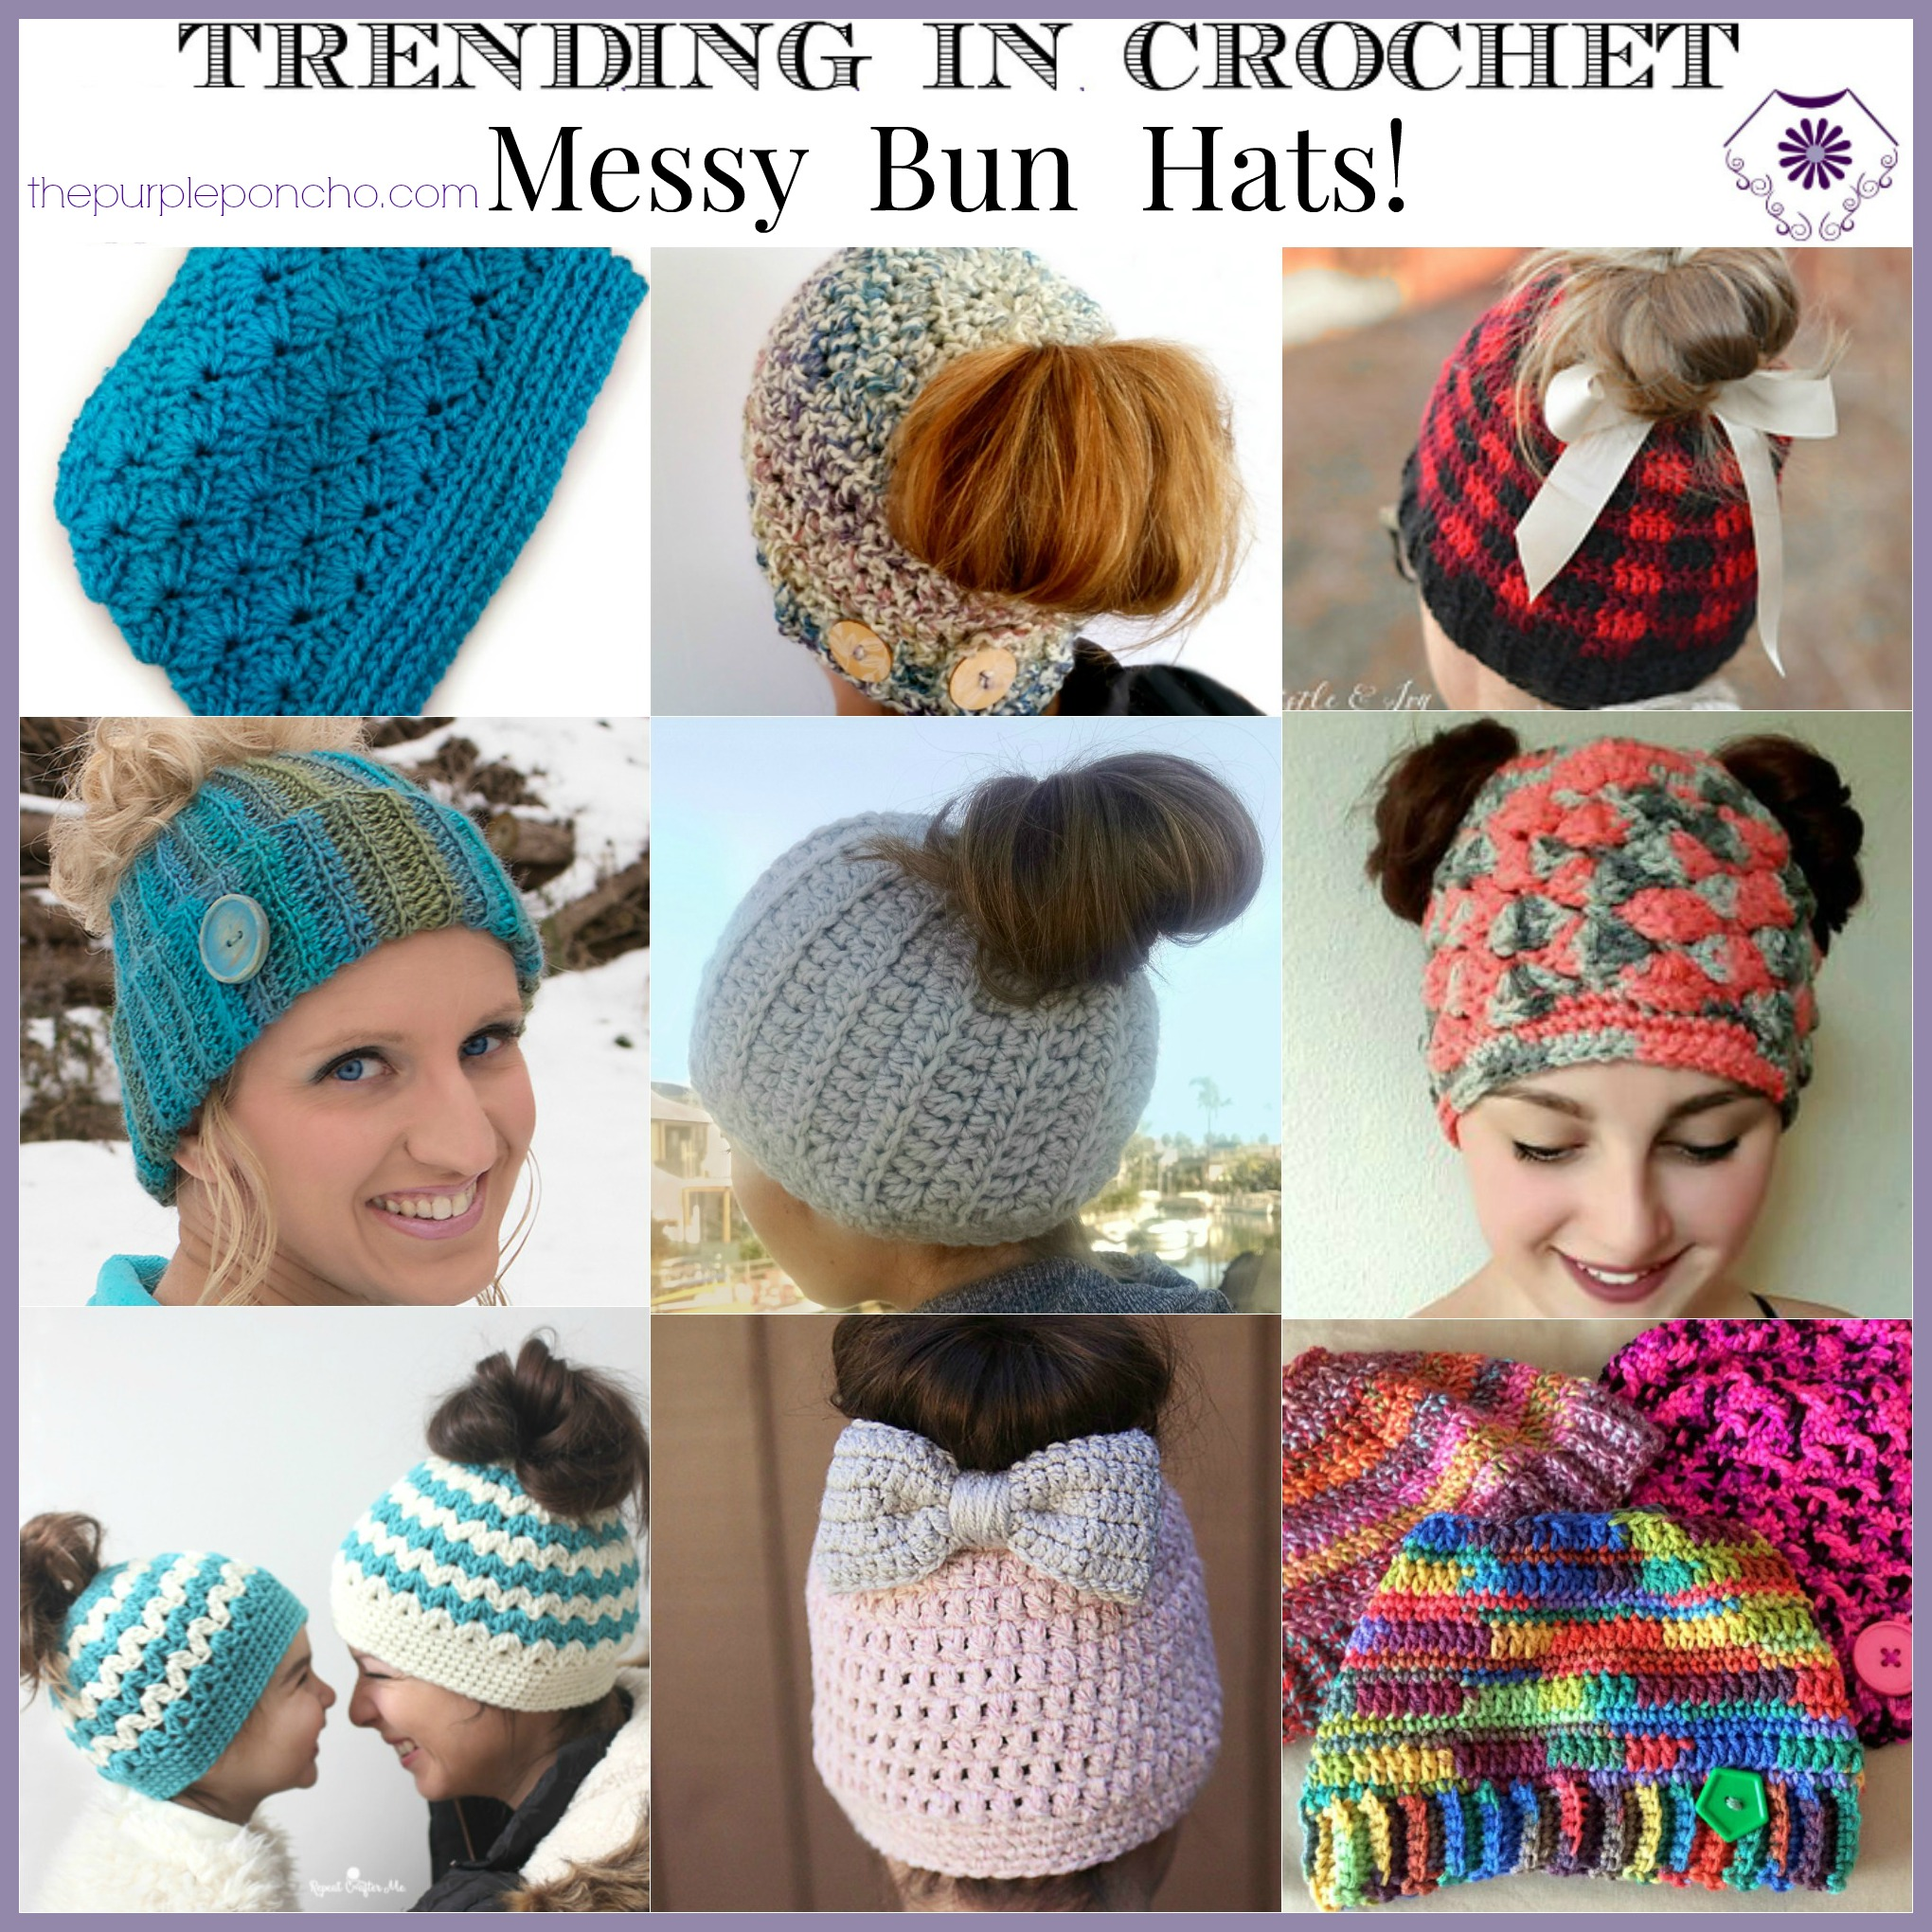 Crochet Messy Bun Hat : ... Trending in Crochet on The Purple Poncho this week - Messy Bun Hats